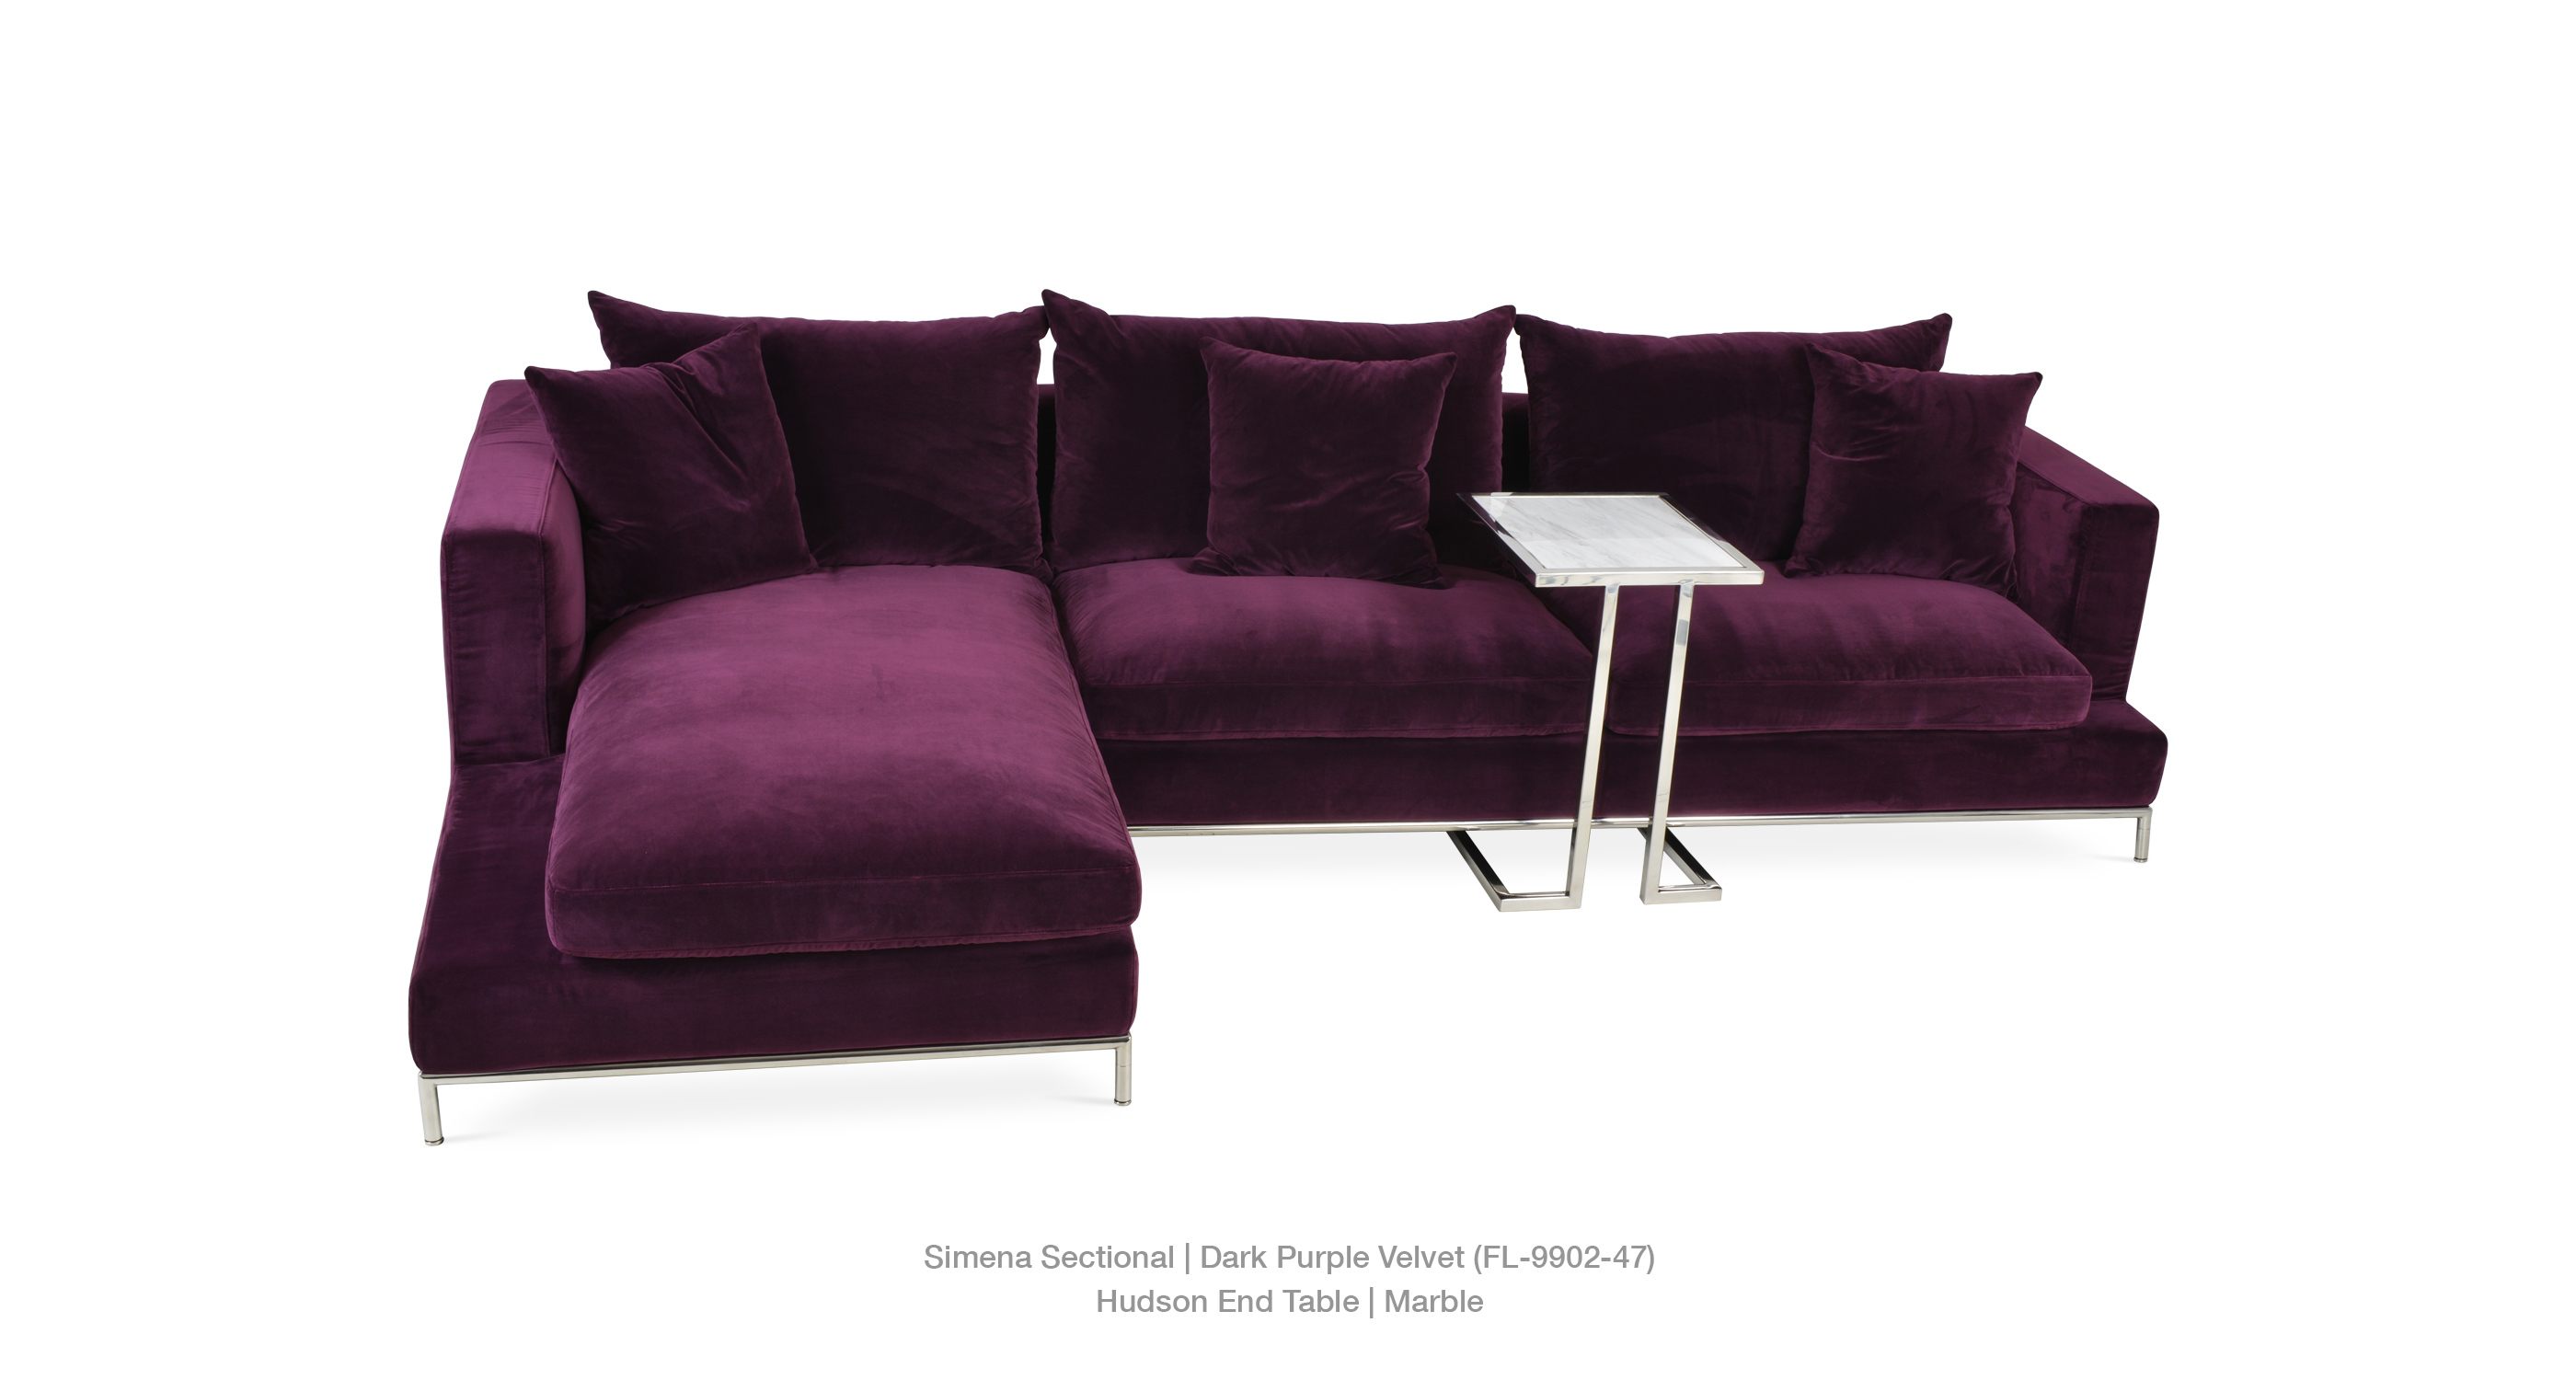 Remarkable Simena Contemporary Sectional Sofas Sohoconcept Pdpeps Interior Chair Design Pdpepsorg